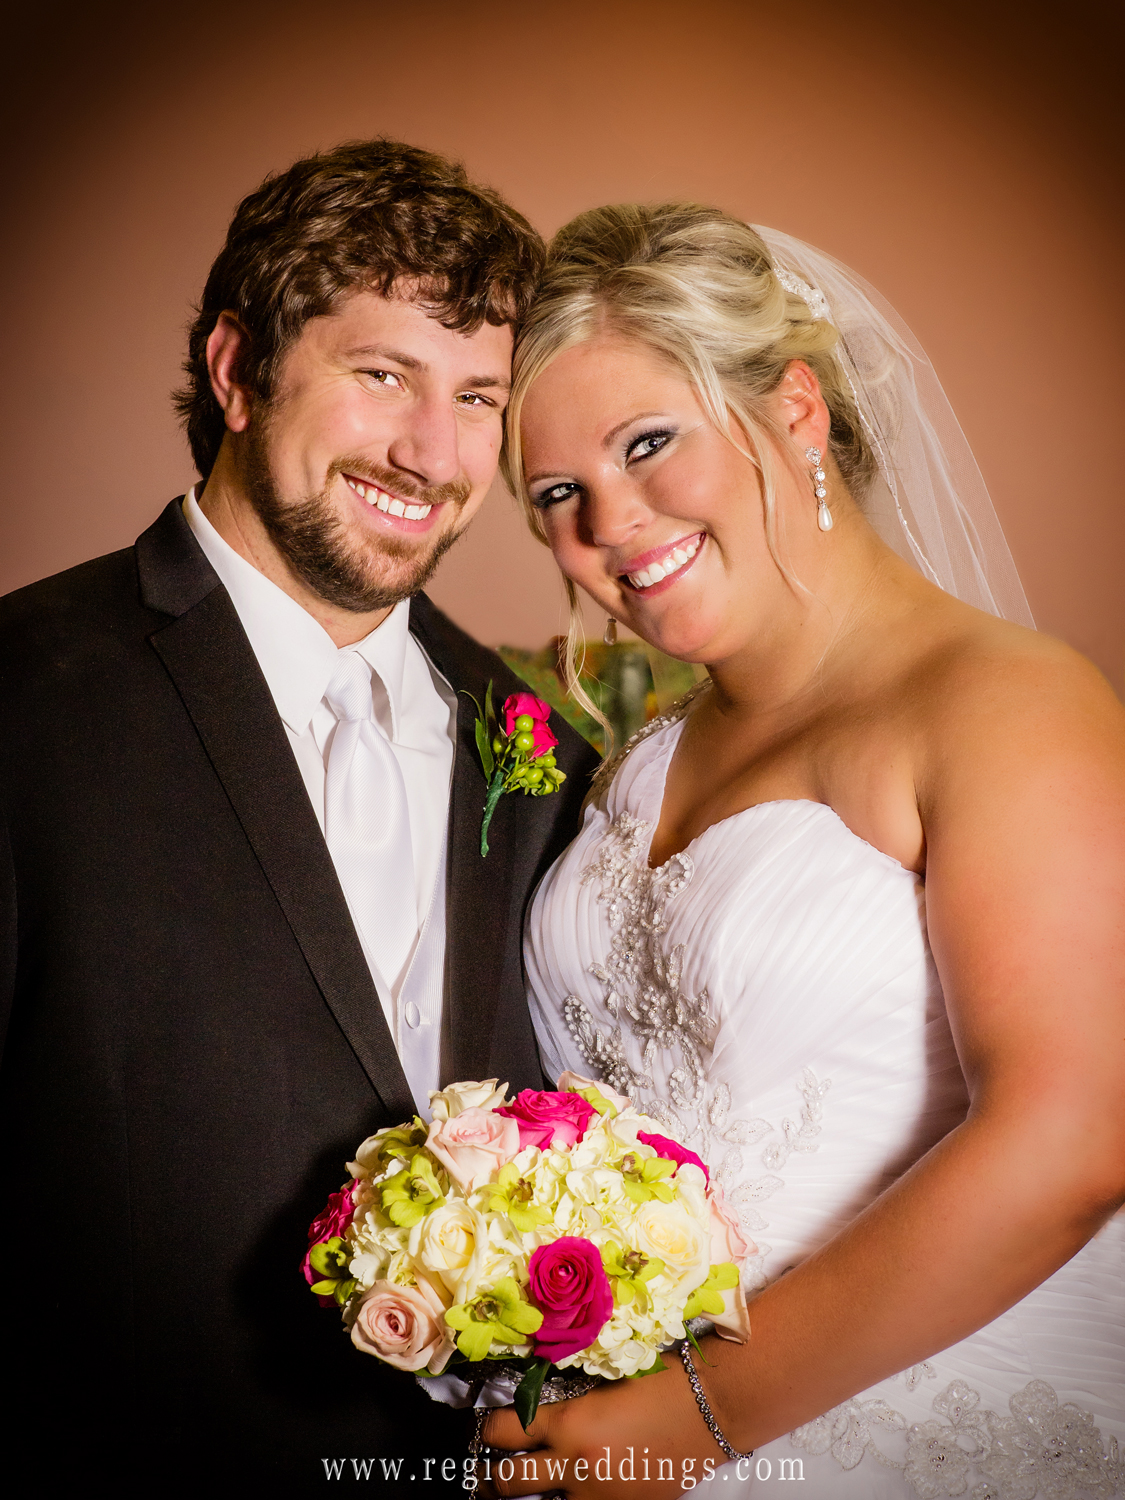 A formal wedding photo of the bride and groom at the altar of St. Elizabeth Ann Seton Church in Valparaiso.